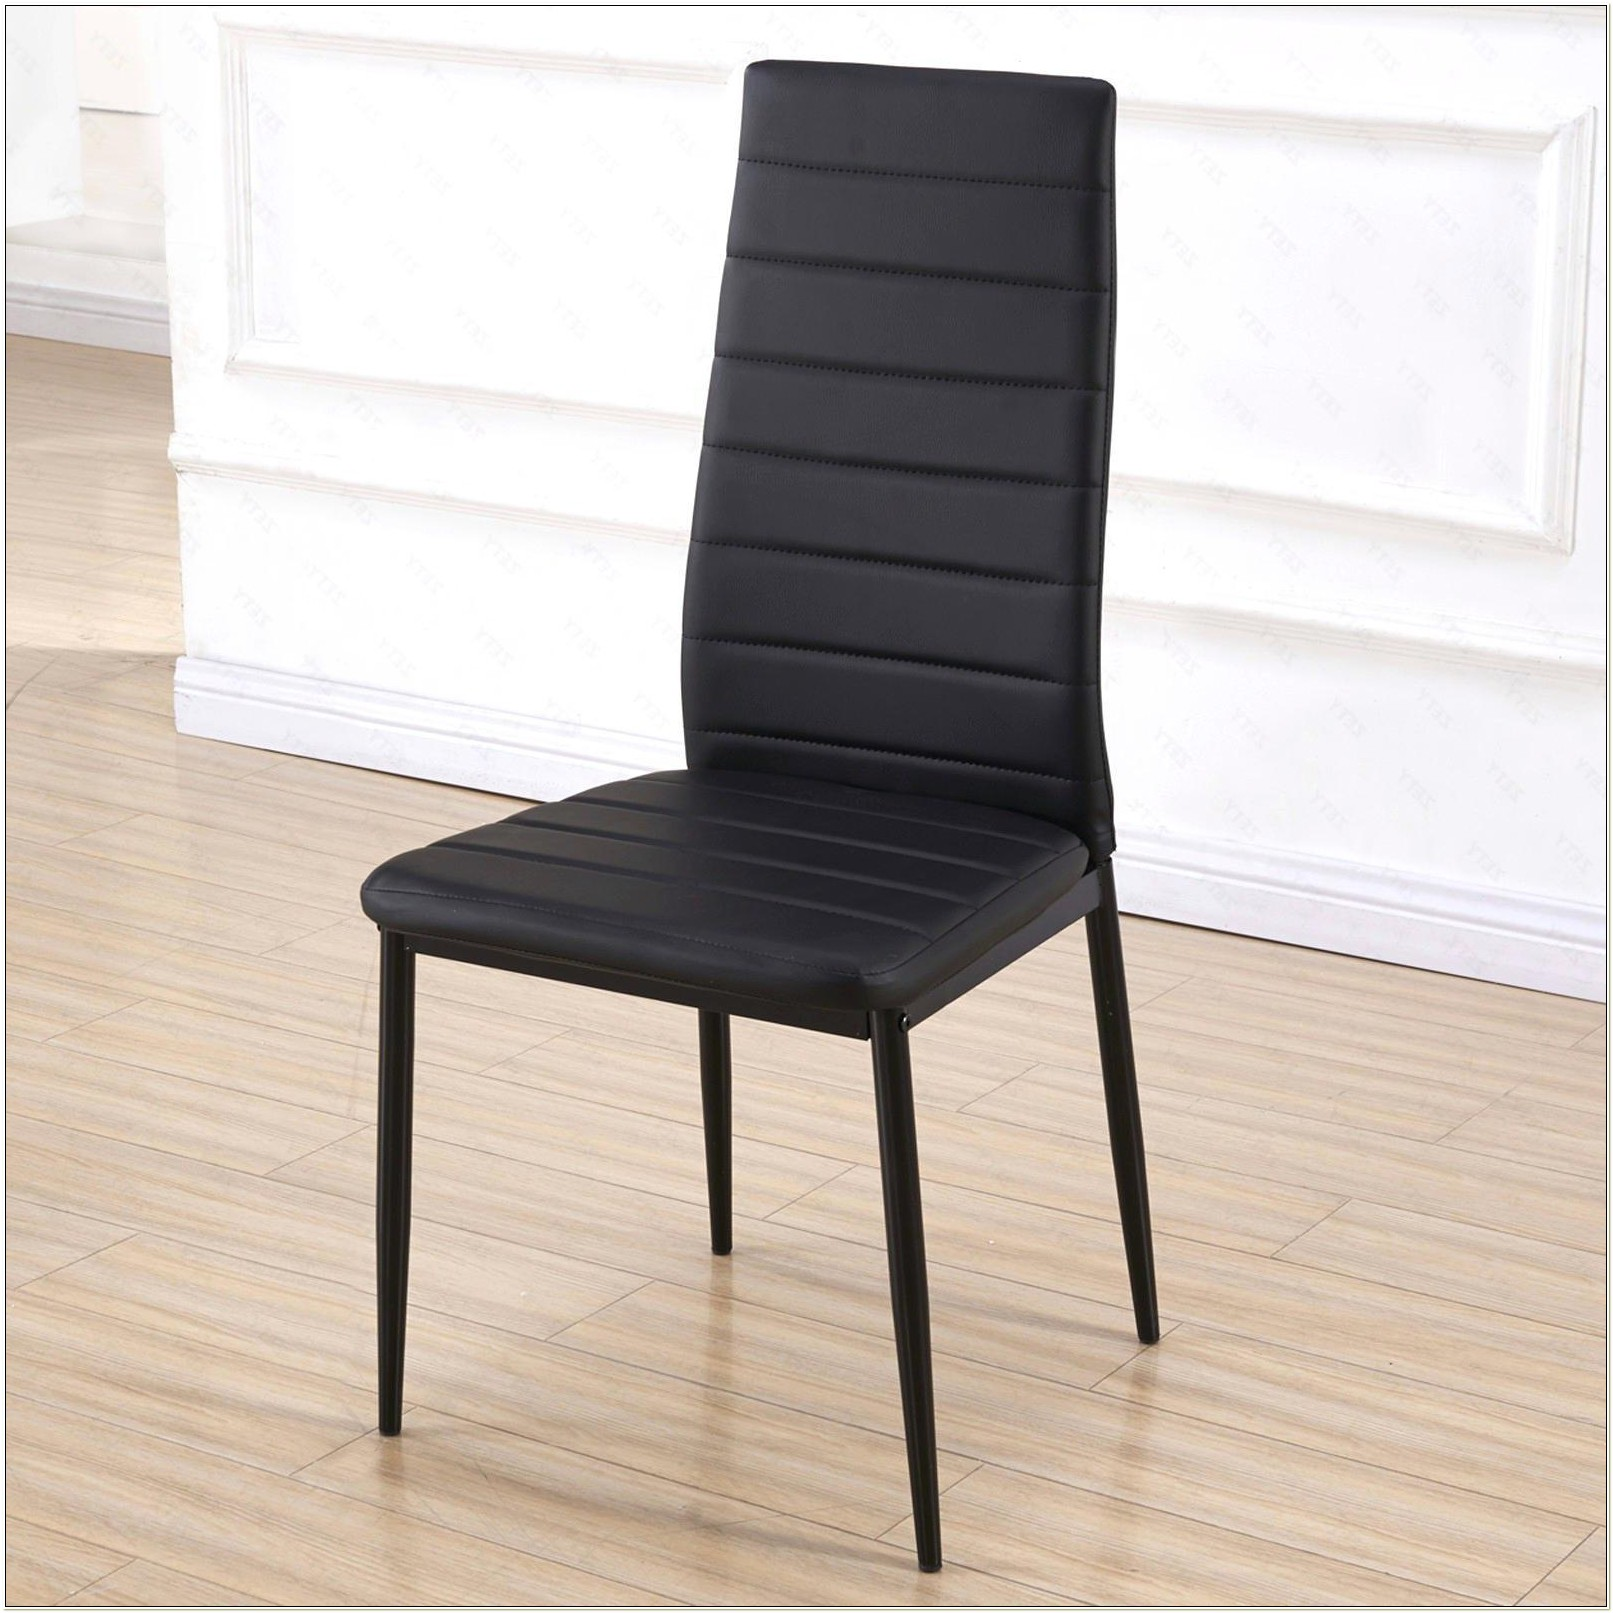 Ebay Uk Faux Leather Dining Chairs